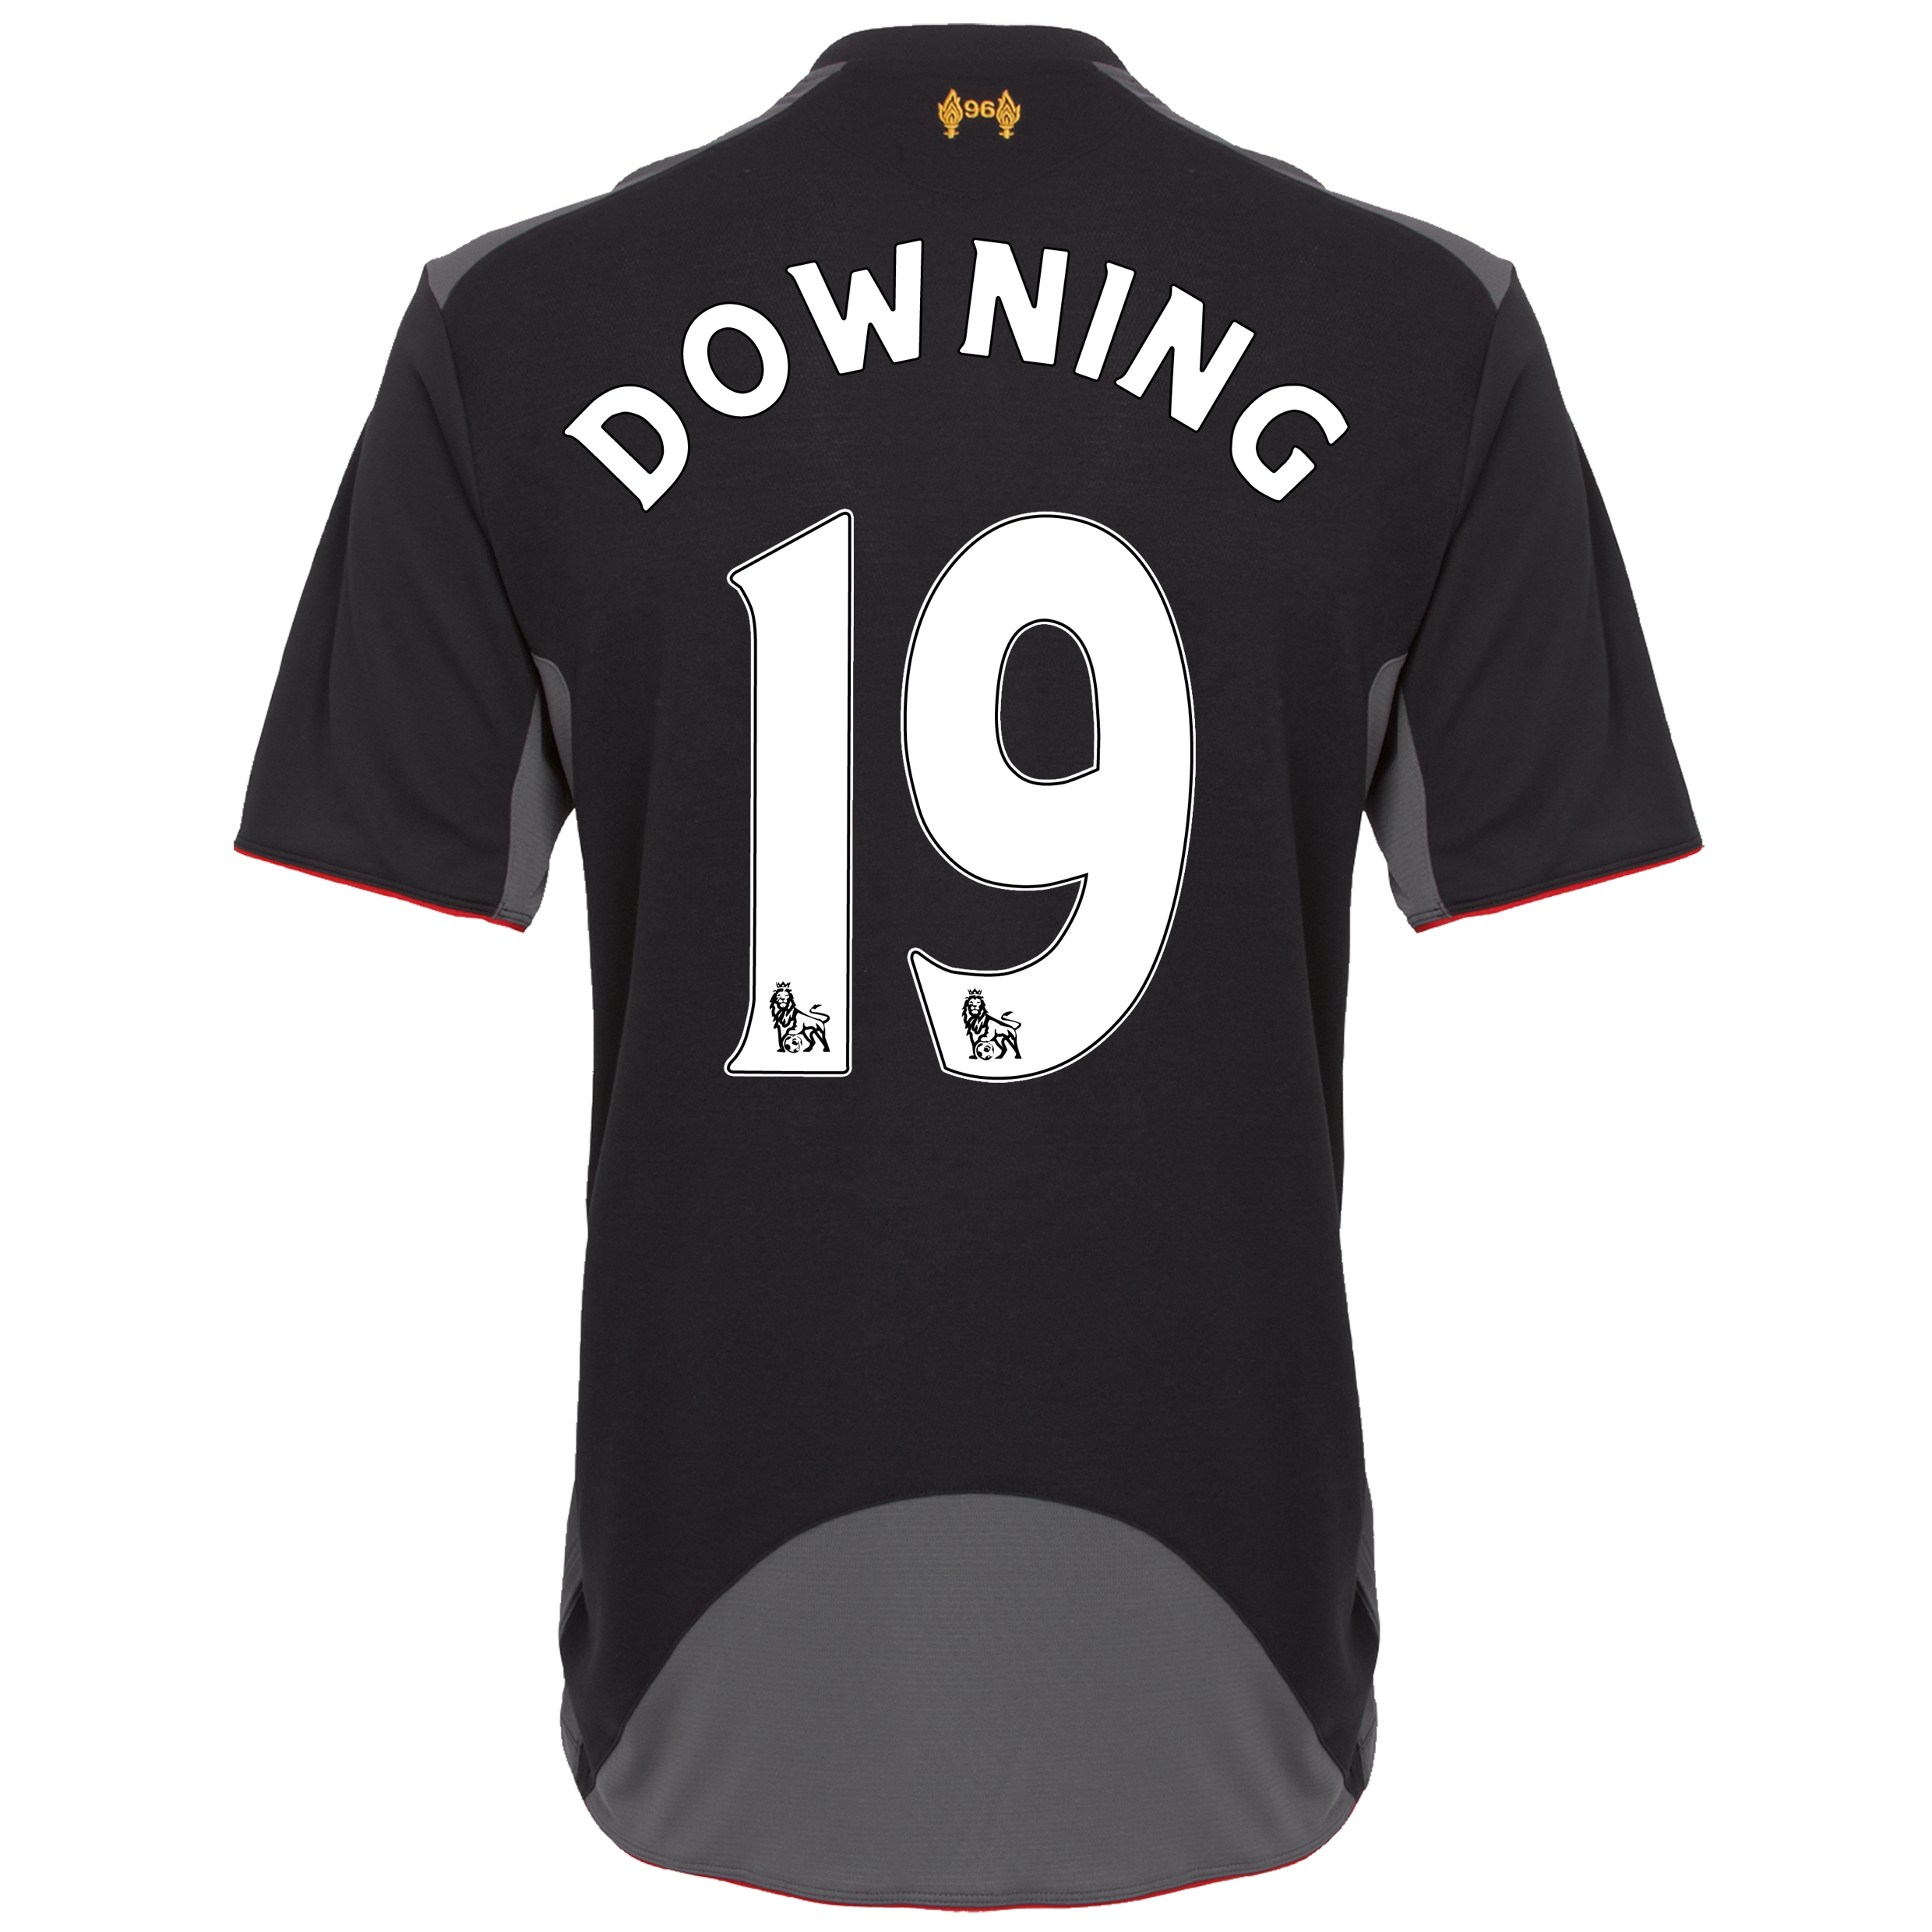 Liverpool Away Shirt 2012/13 - Youths with Downing 19 printing